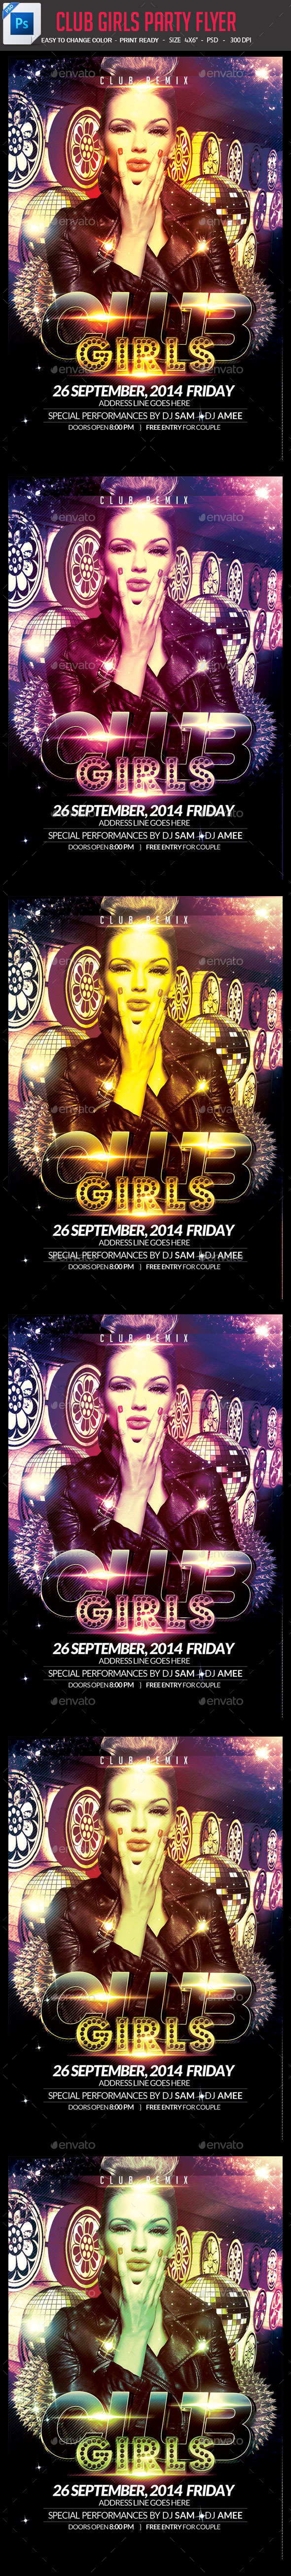 Club Girls party Flyer - Clubs & Parties Events